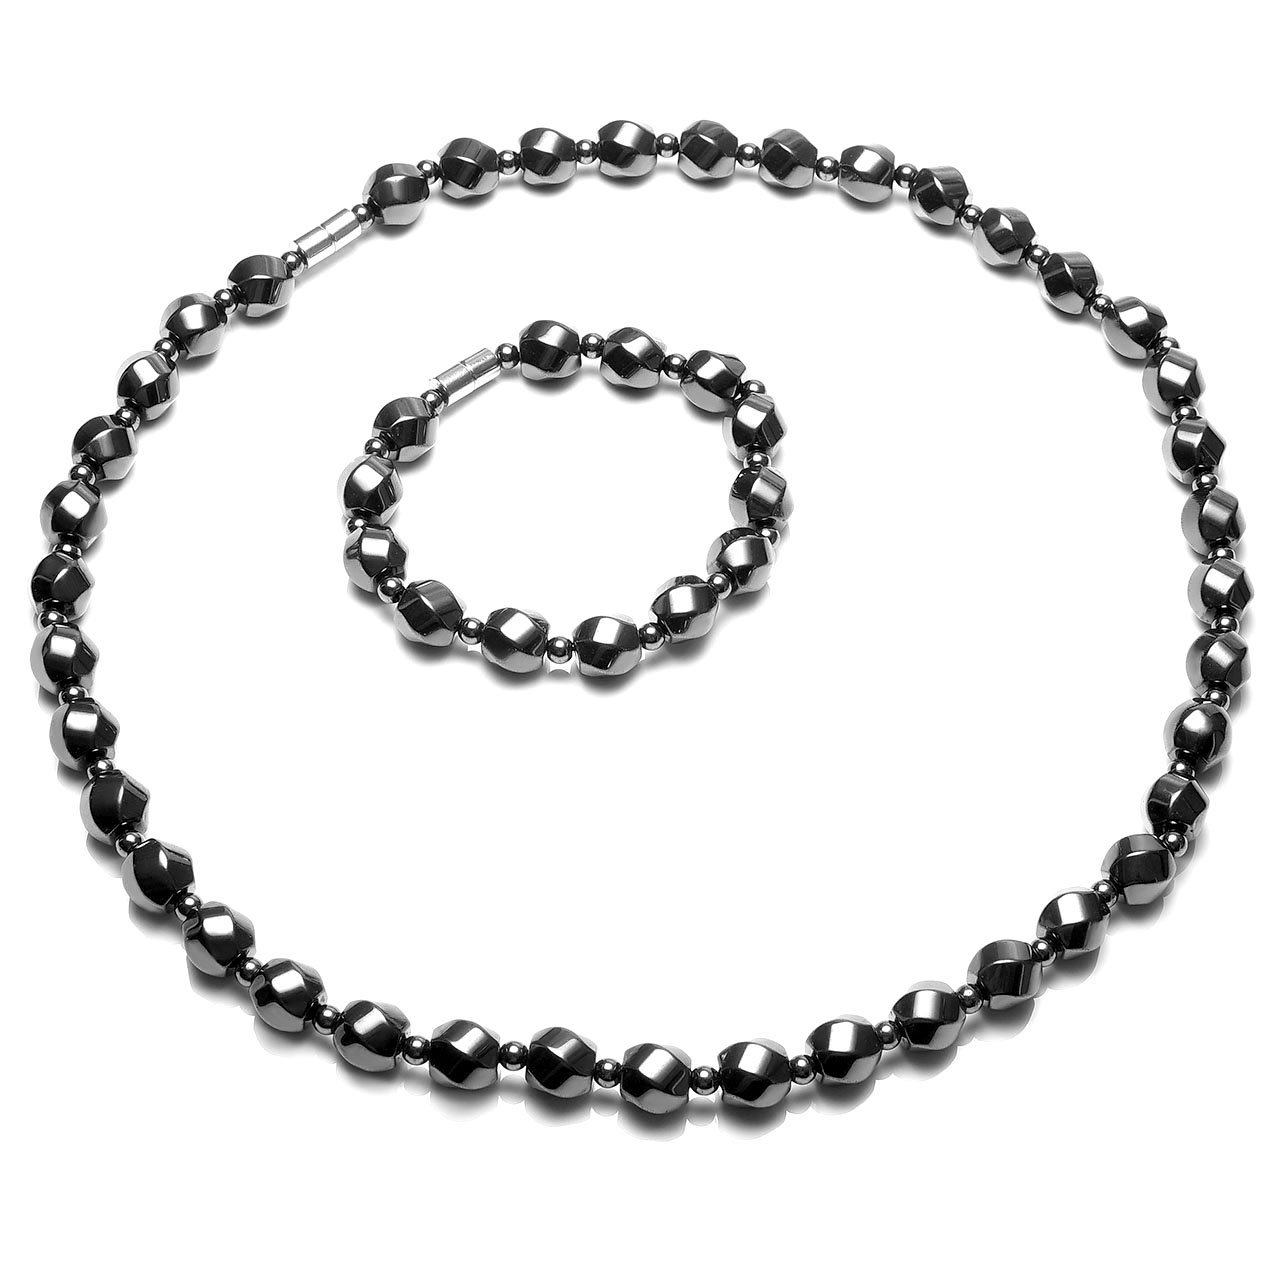 Top Plaza Men's Womens Healing Natural Tiger Eye Stones Black Hematite Magnetic Beads Therapy Unadjustable Clasp Bracelet Necklace Set for Pain Anxiety Relief #7